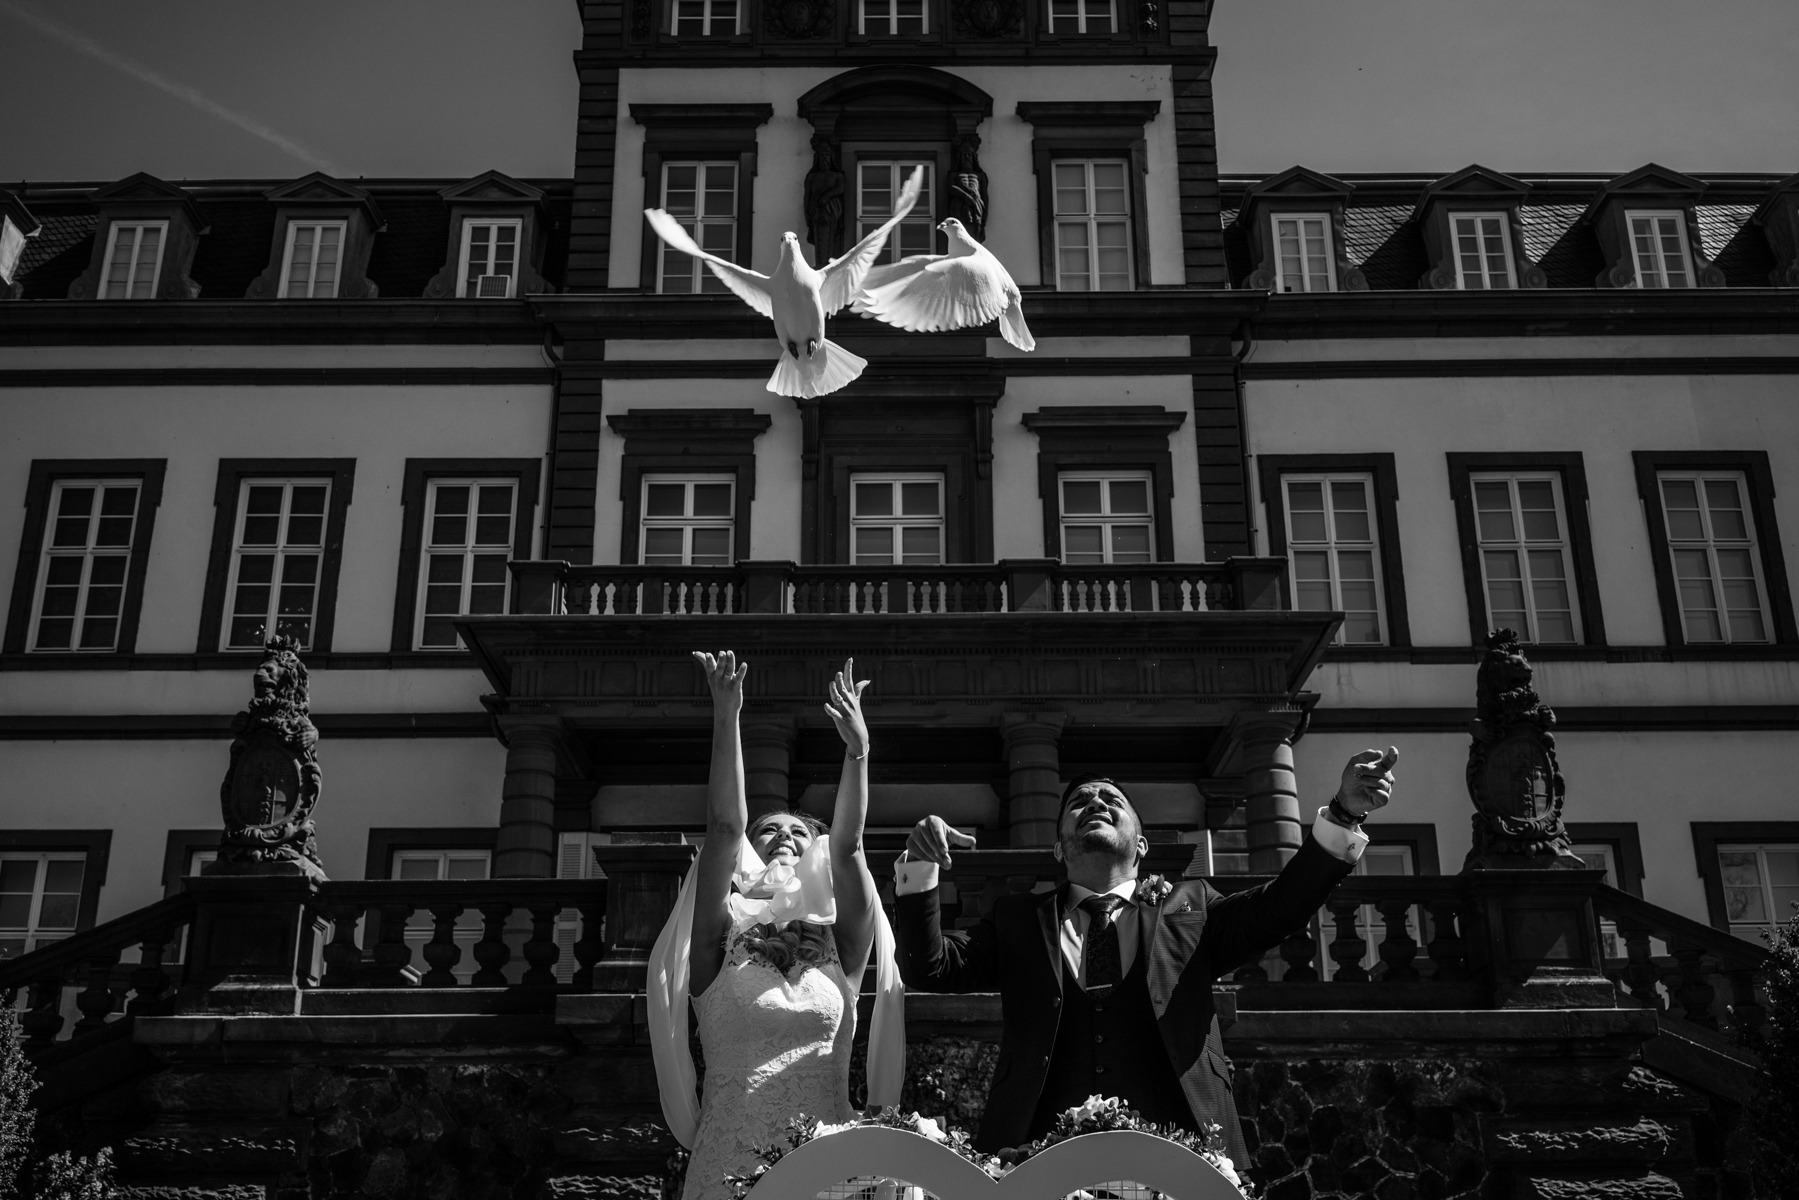 In front of Castle Philippsruhe in Hanau/Germany a bride and groom release white pigeons during their wedding because the birds are a symbol of love due to their faithfulness towards their partners. Not all weeding pigeons find their way home after weddings. Some get lost and join flocks of city pigeons. Since they have been fed by breeders all their life, most homing pigeons have a short life once they end up on the streets.